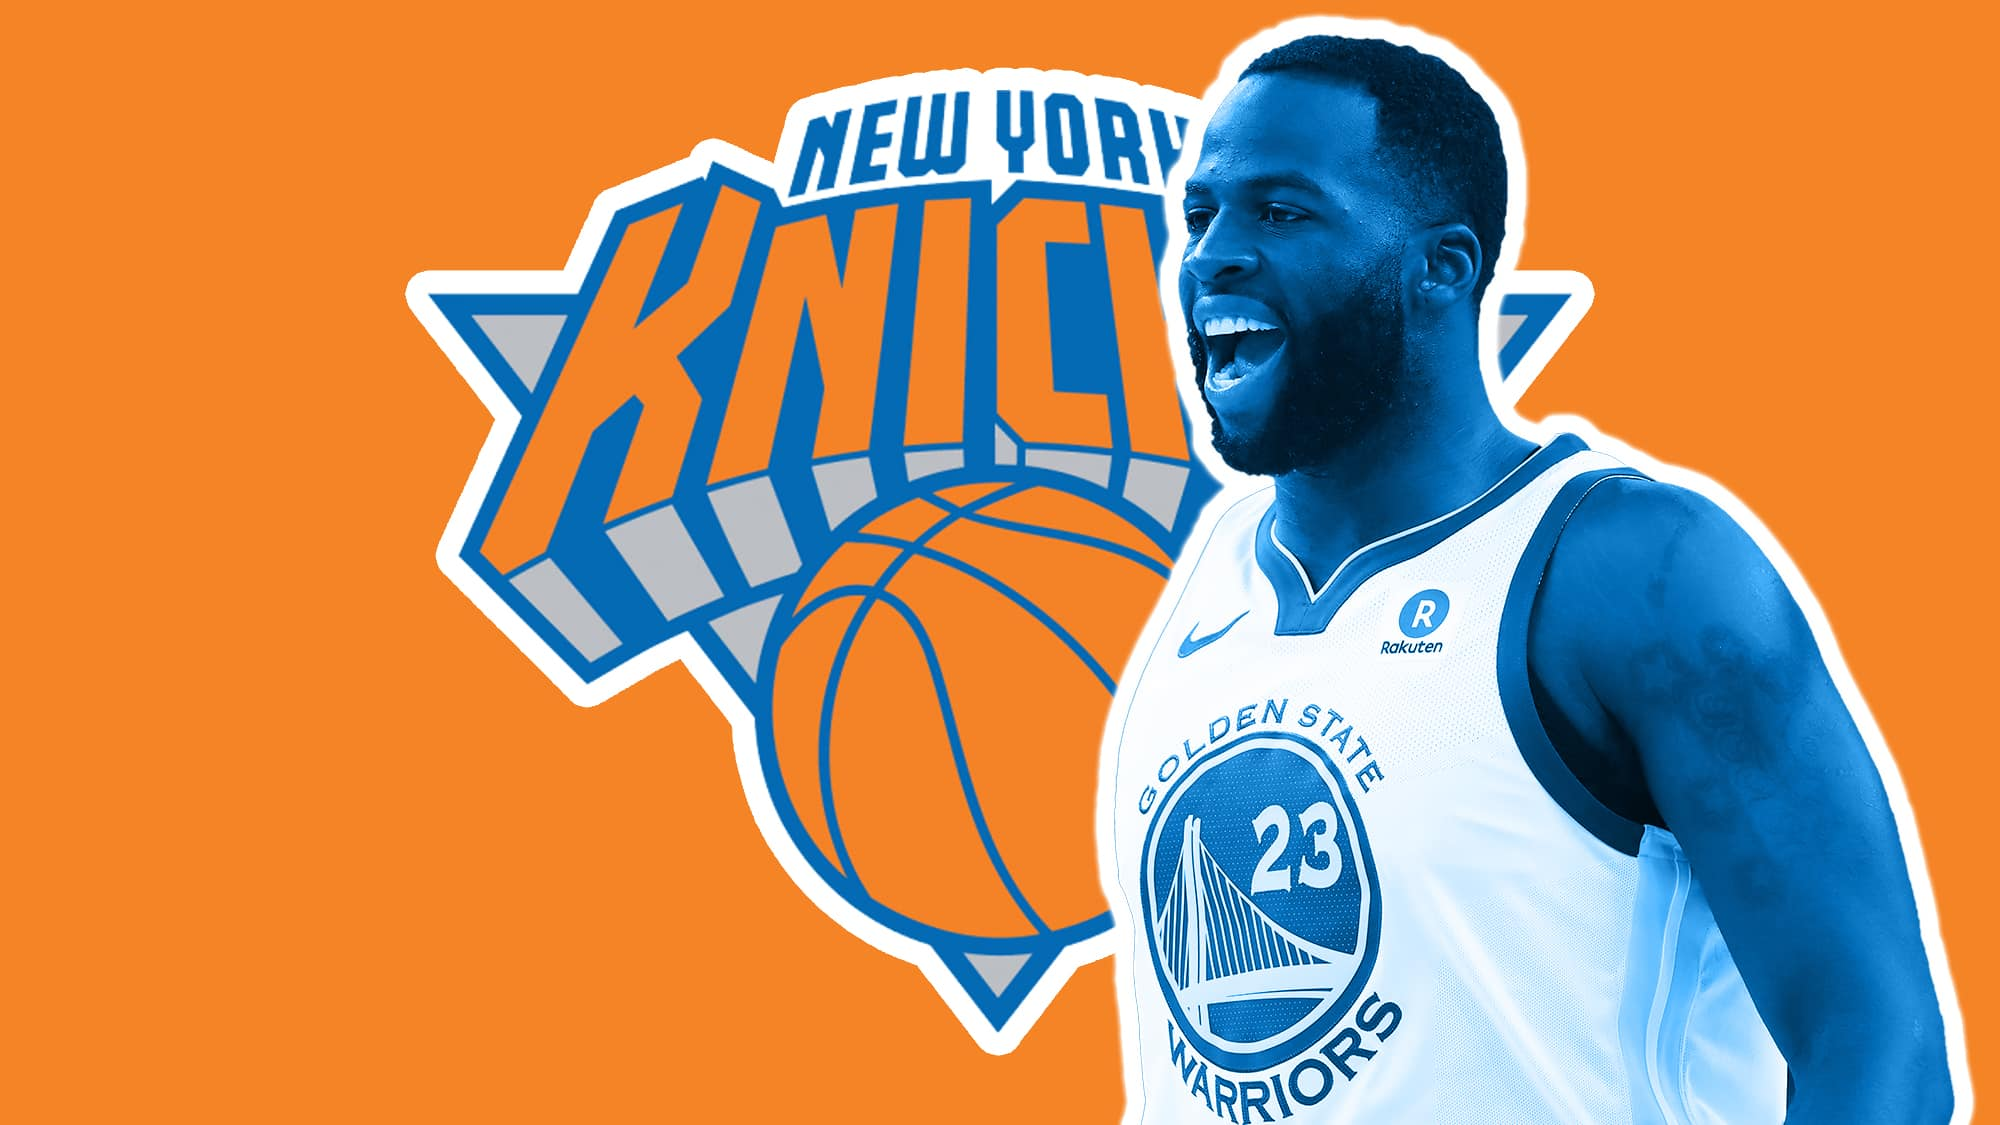 reputable site f1f35 4383d New York Knicks: The Draymond Green to the Knicks noise will ...